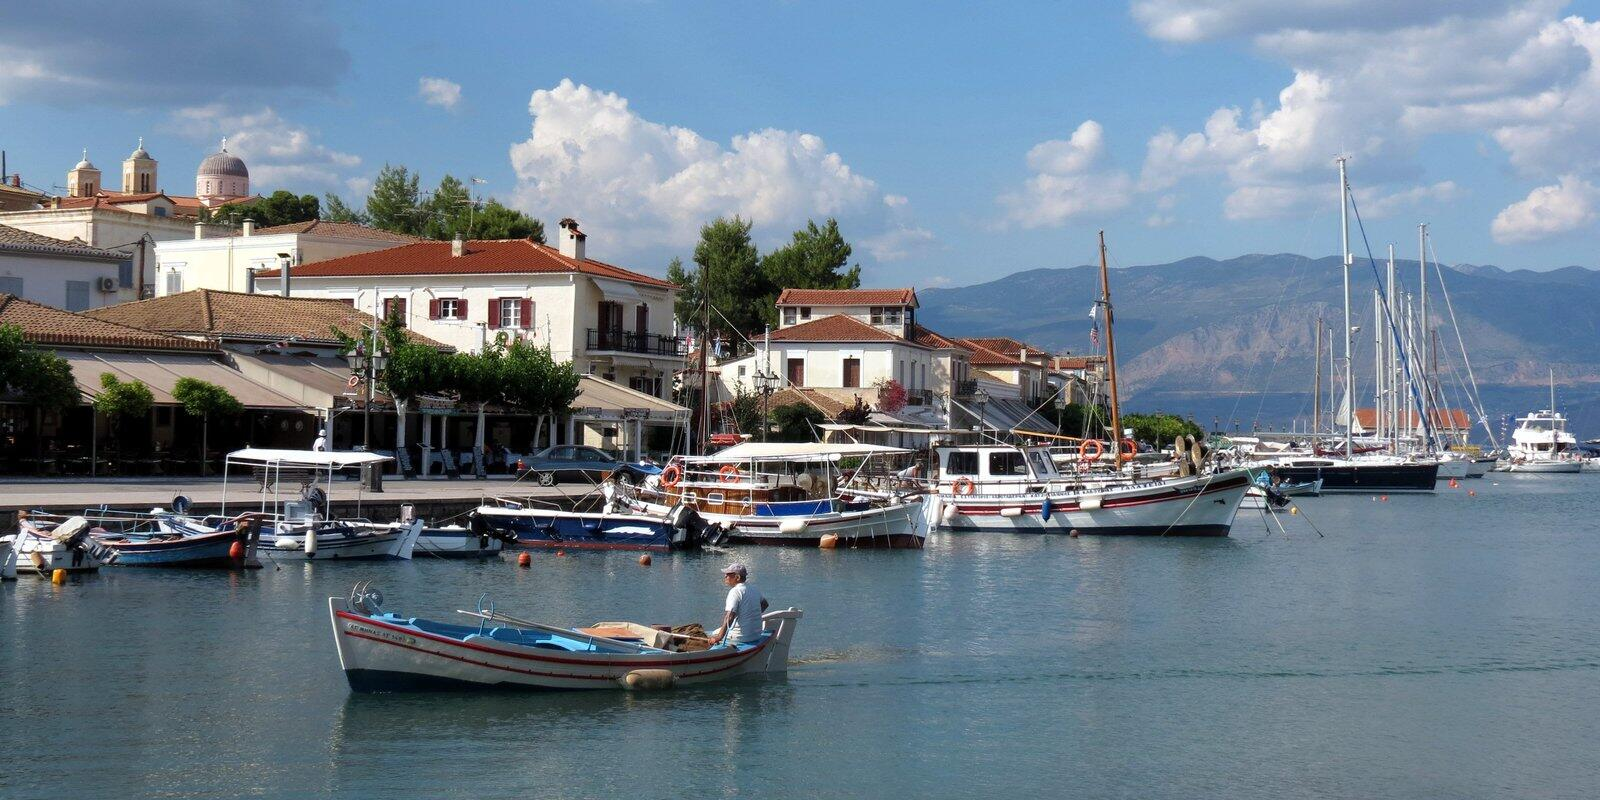 Sail with us under the Greek sun in its paradisiacal islands: Corfu, Paxos, Lefkada